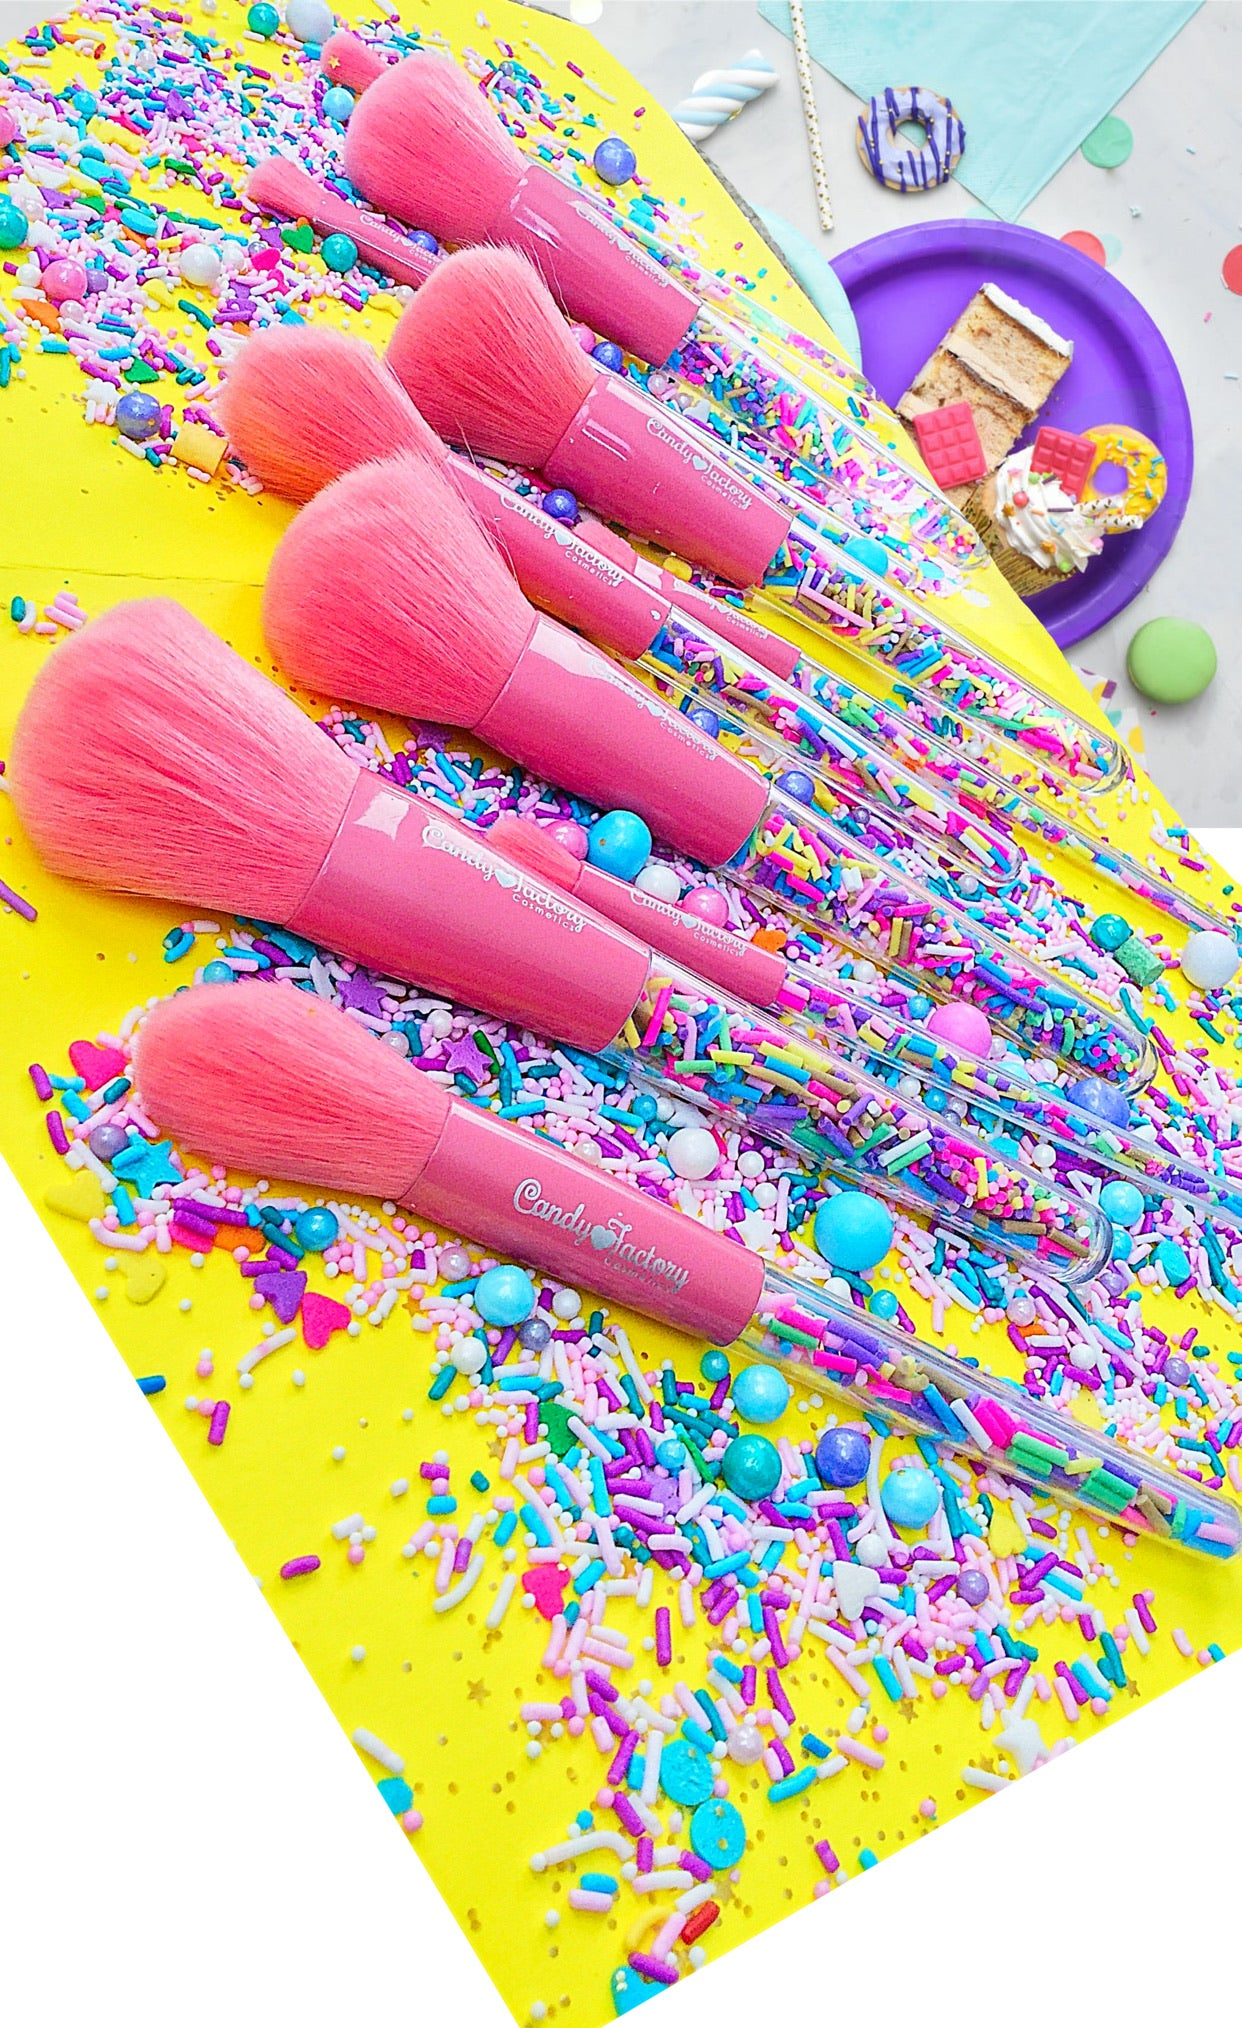 Sprinkle Brush Collection - Candy Factory Cosmetics